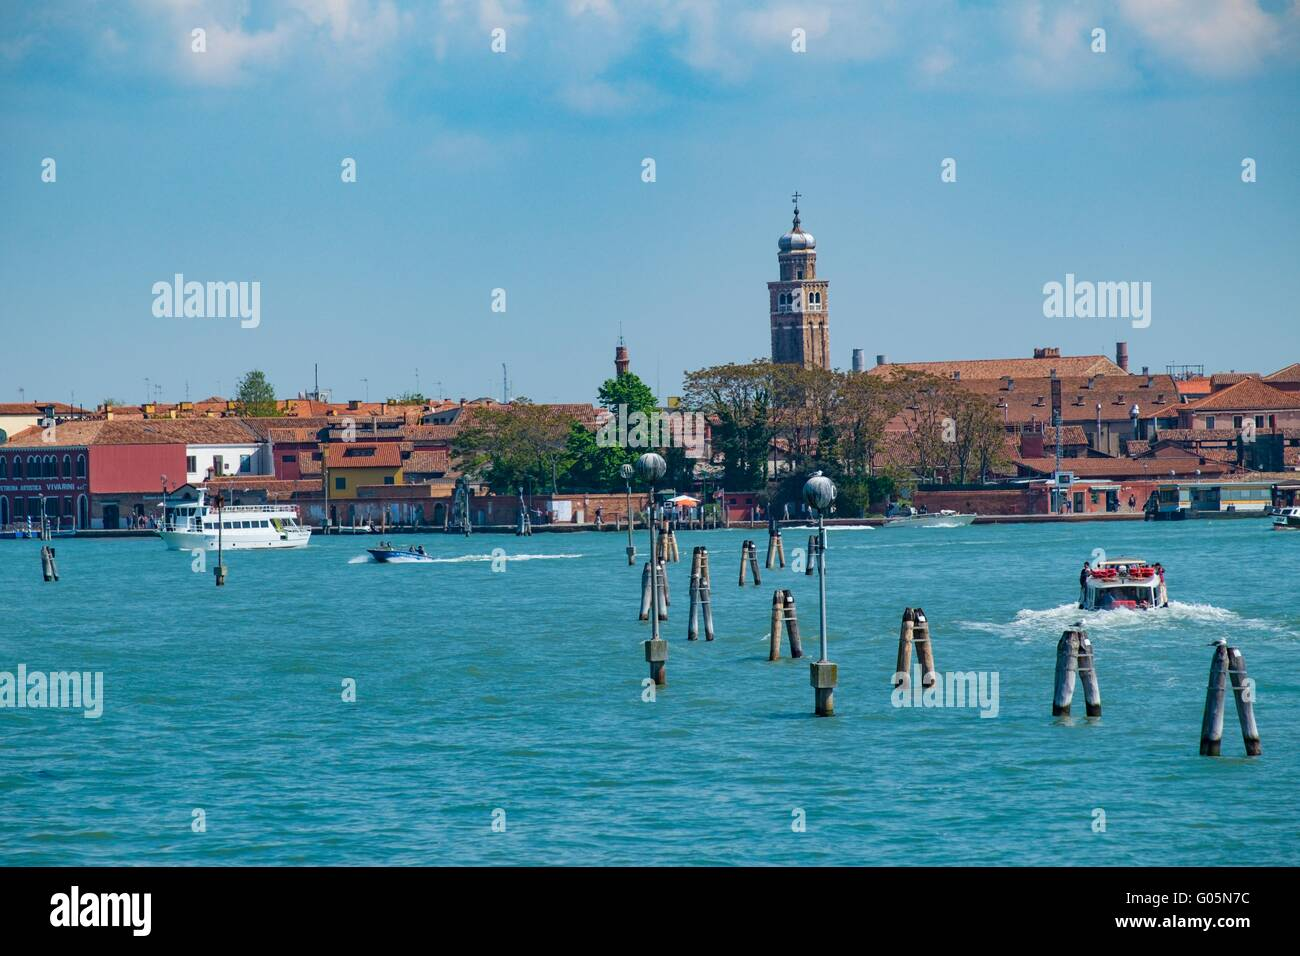 Boats on the Canale delle Fondamenta Nuove travelling to and from Murano Island, Venice, Italy, April - Stock Image